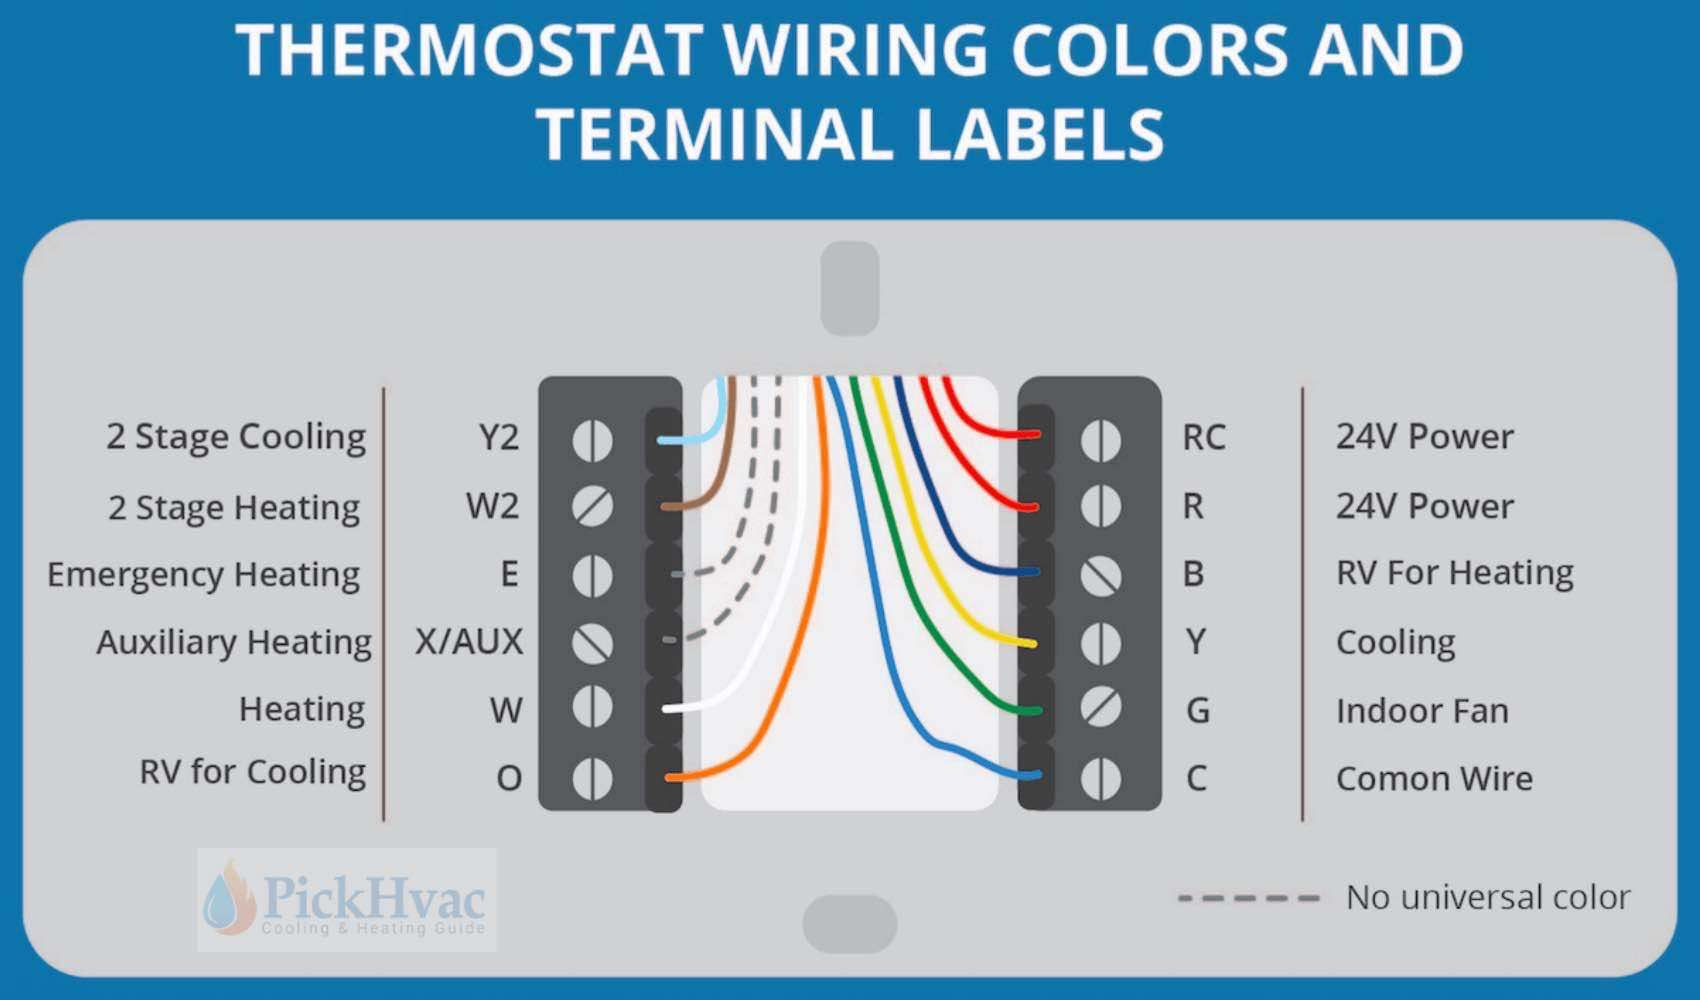 thermostat wiring colors to labels | Thermostat wiring, Hvac thermostat,  Heating thermostatPinterest